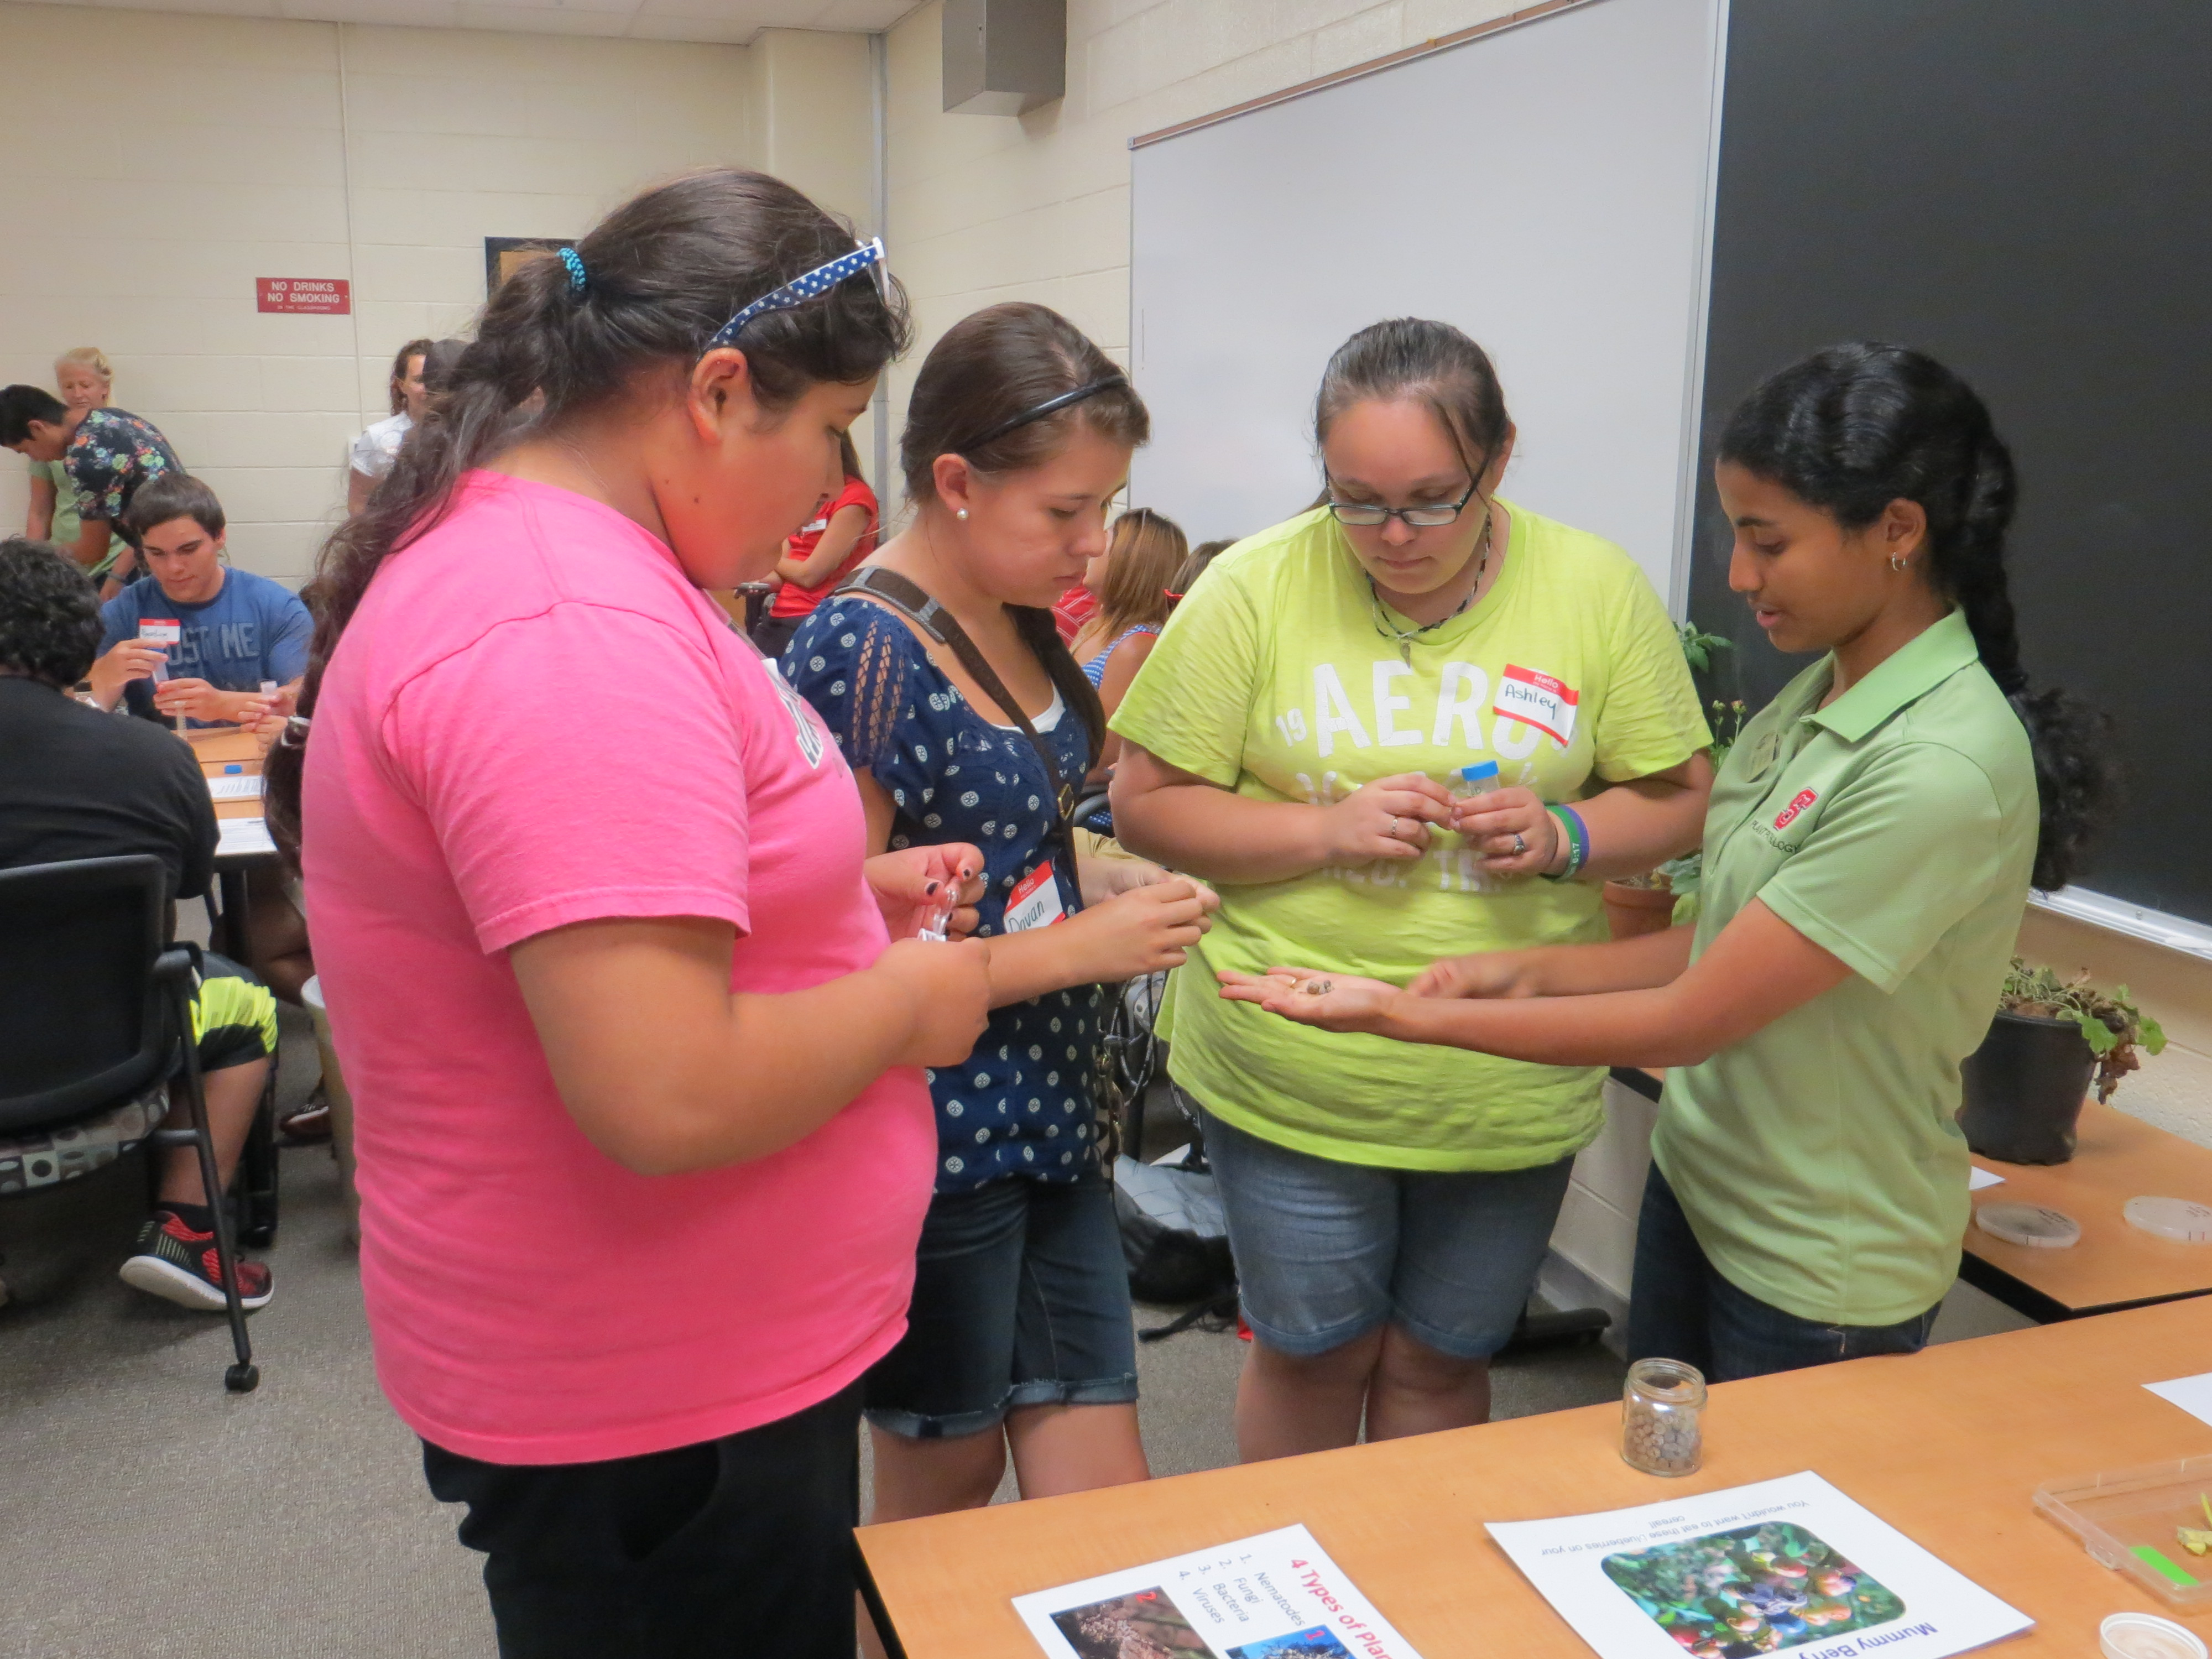 Graduate Student Anna Thomas shows high school students mummy berry disease samples. Photo Credit: Alyssa Koehler.